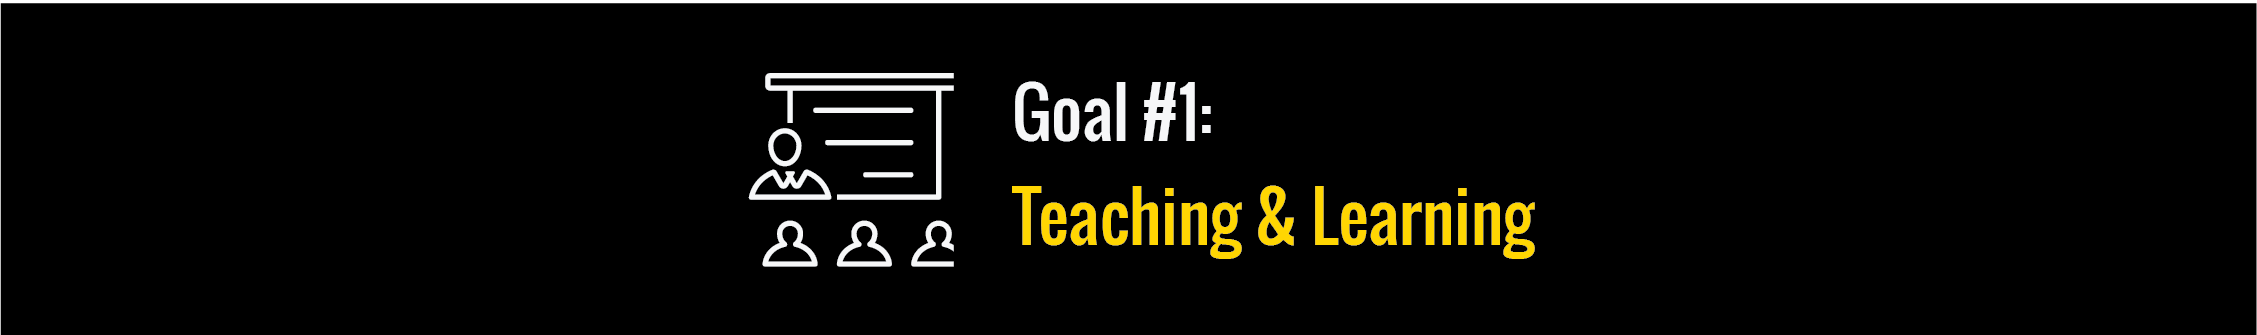 Goal #1: Teach & Learning